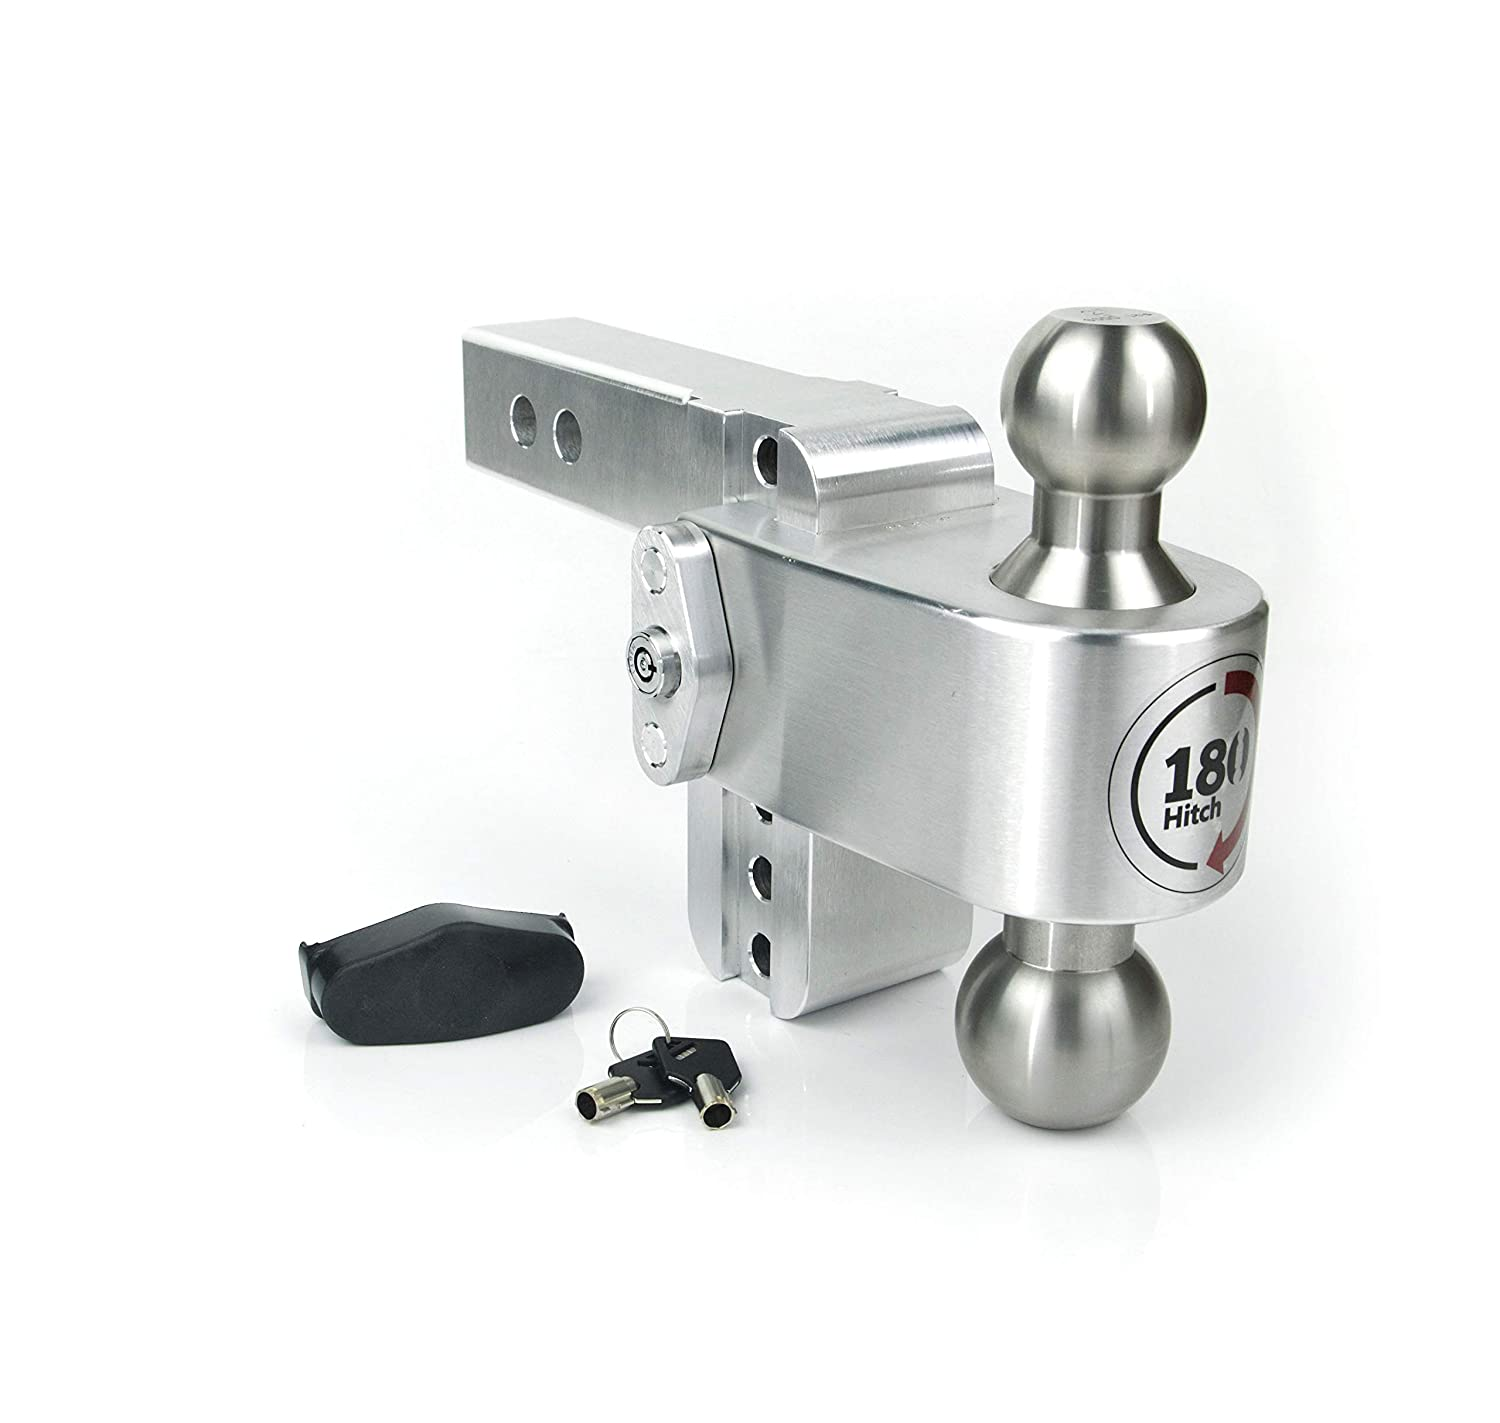 LTB8-2 Adjustable Drop Hitch with Key Lock 2 Shaft 8-inch Weigh Safe 180 Hitch